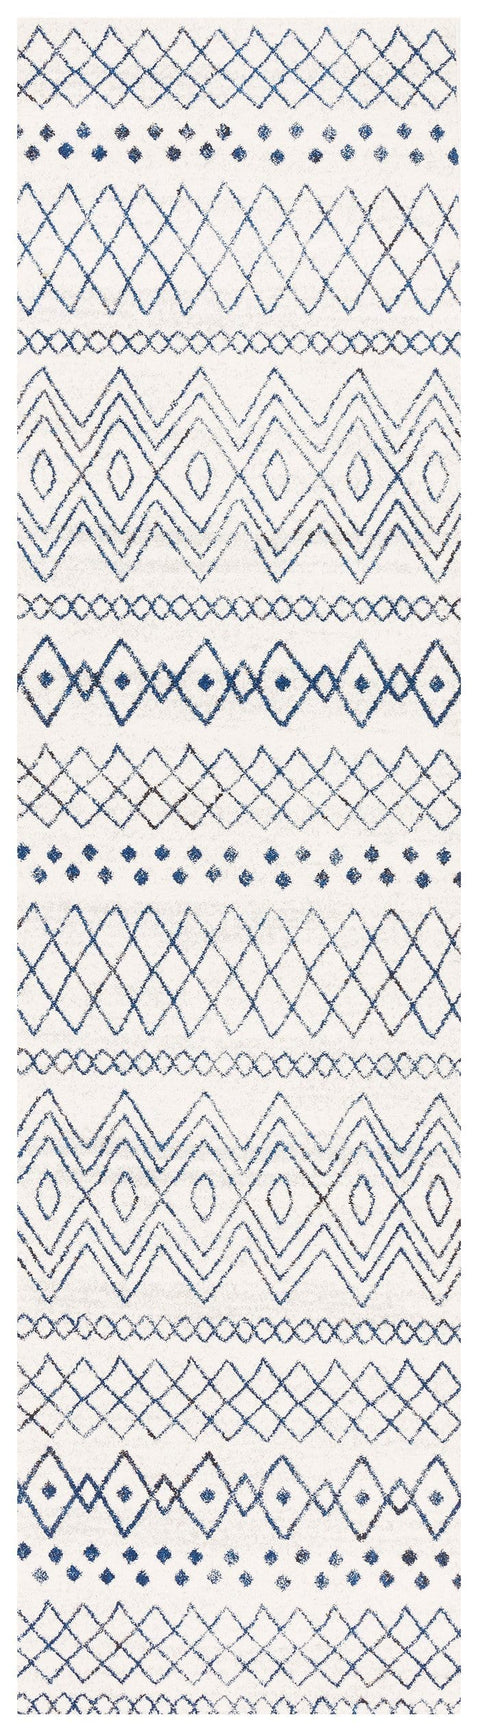 Newport Navy & White Tribal Pattern Runner Rug